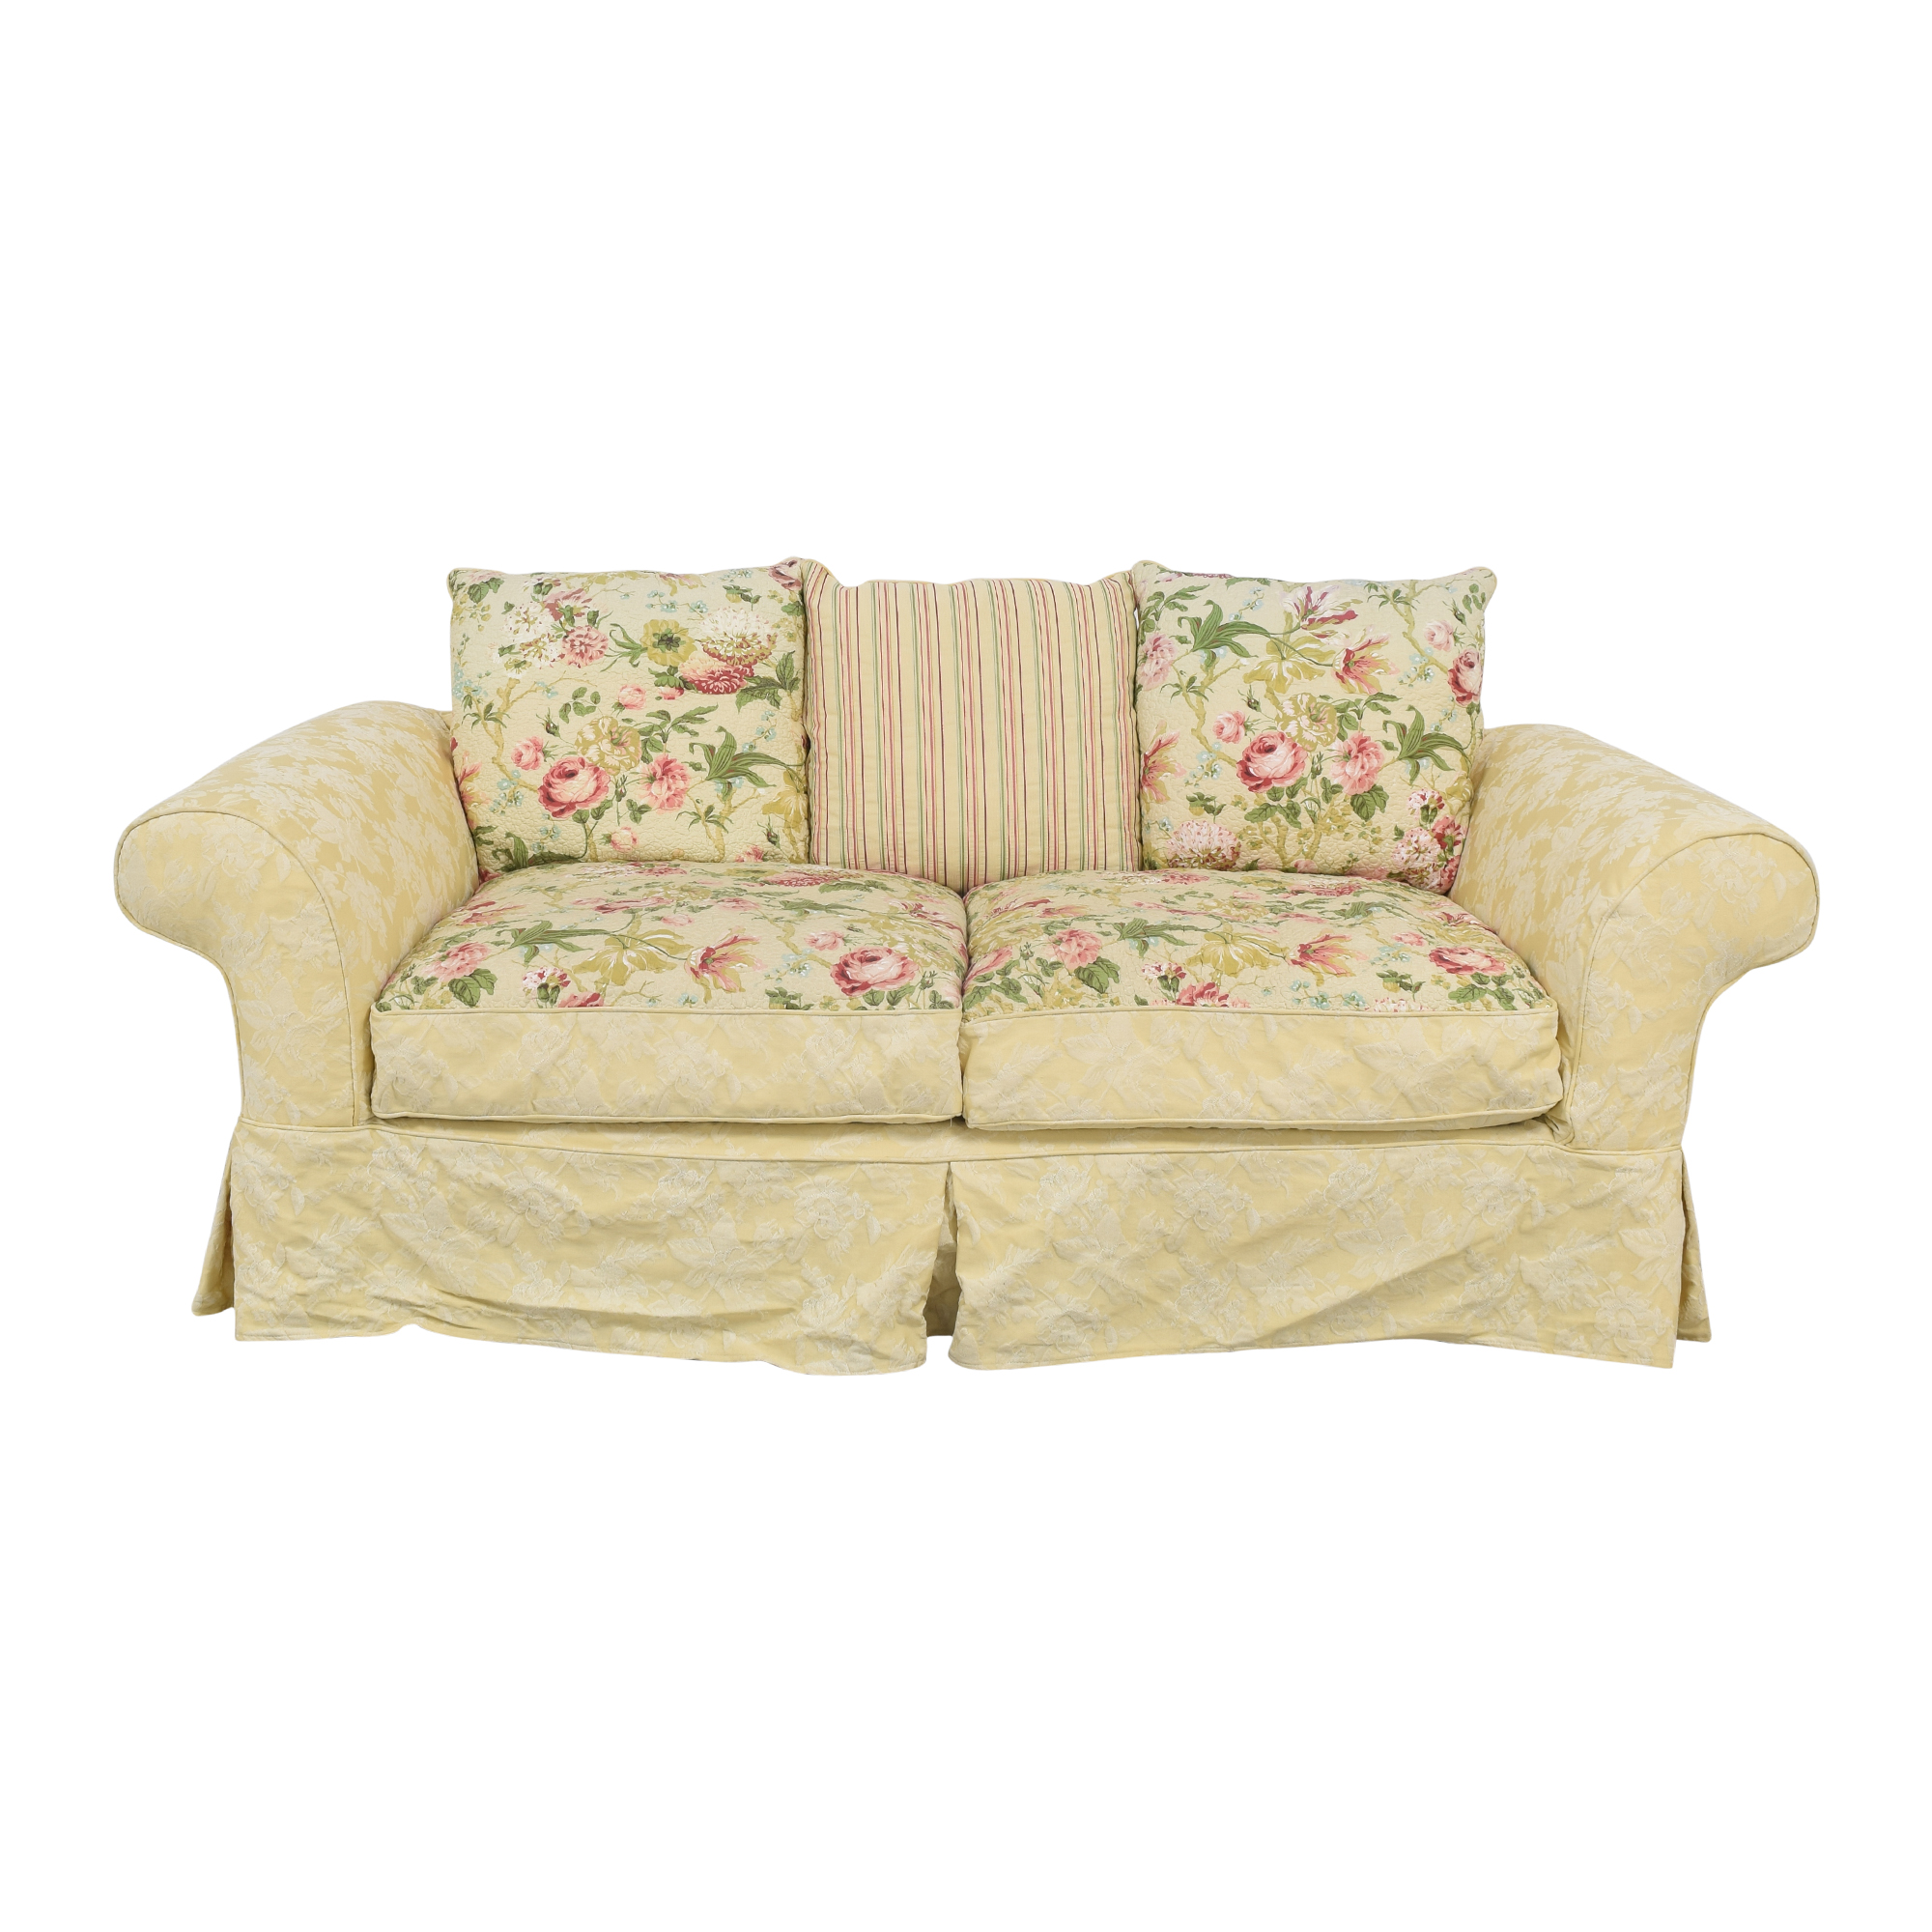 Domain Domain Multi-Patterned Sofa discount